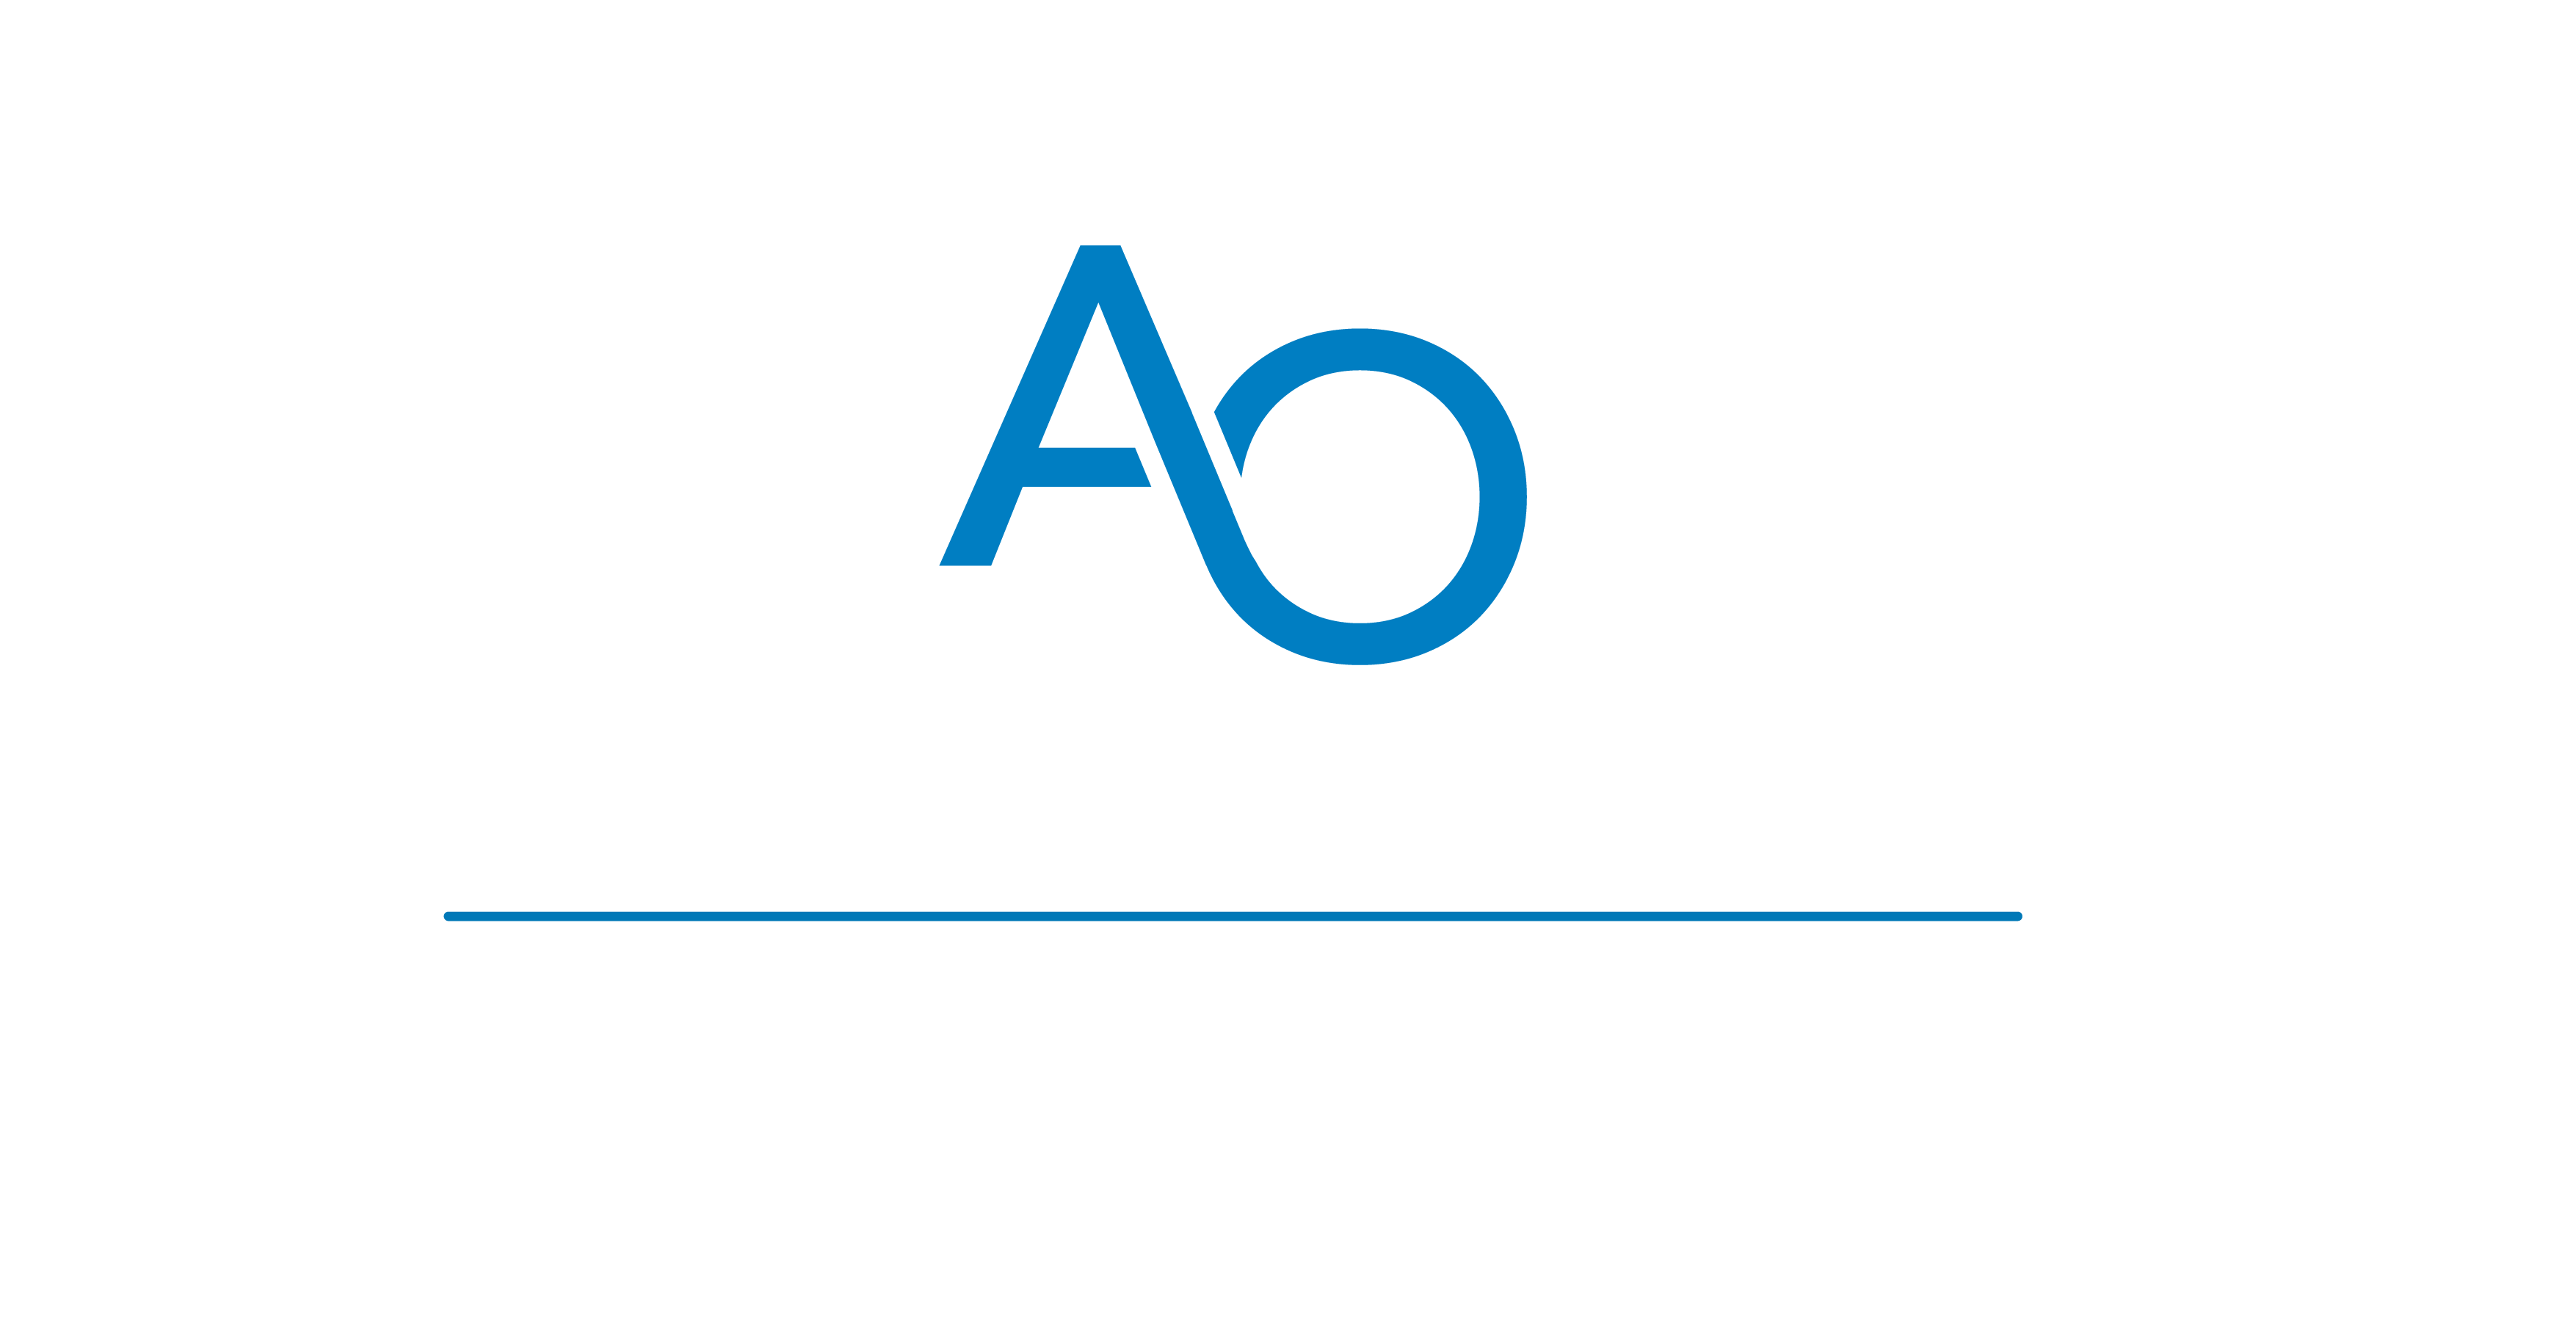 Rechtsanwältin Andrea R. Oster in Daun